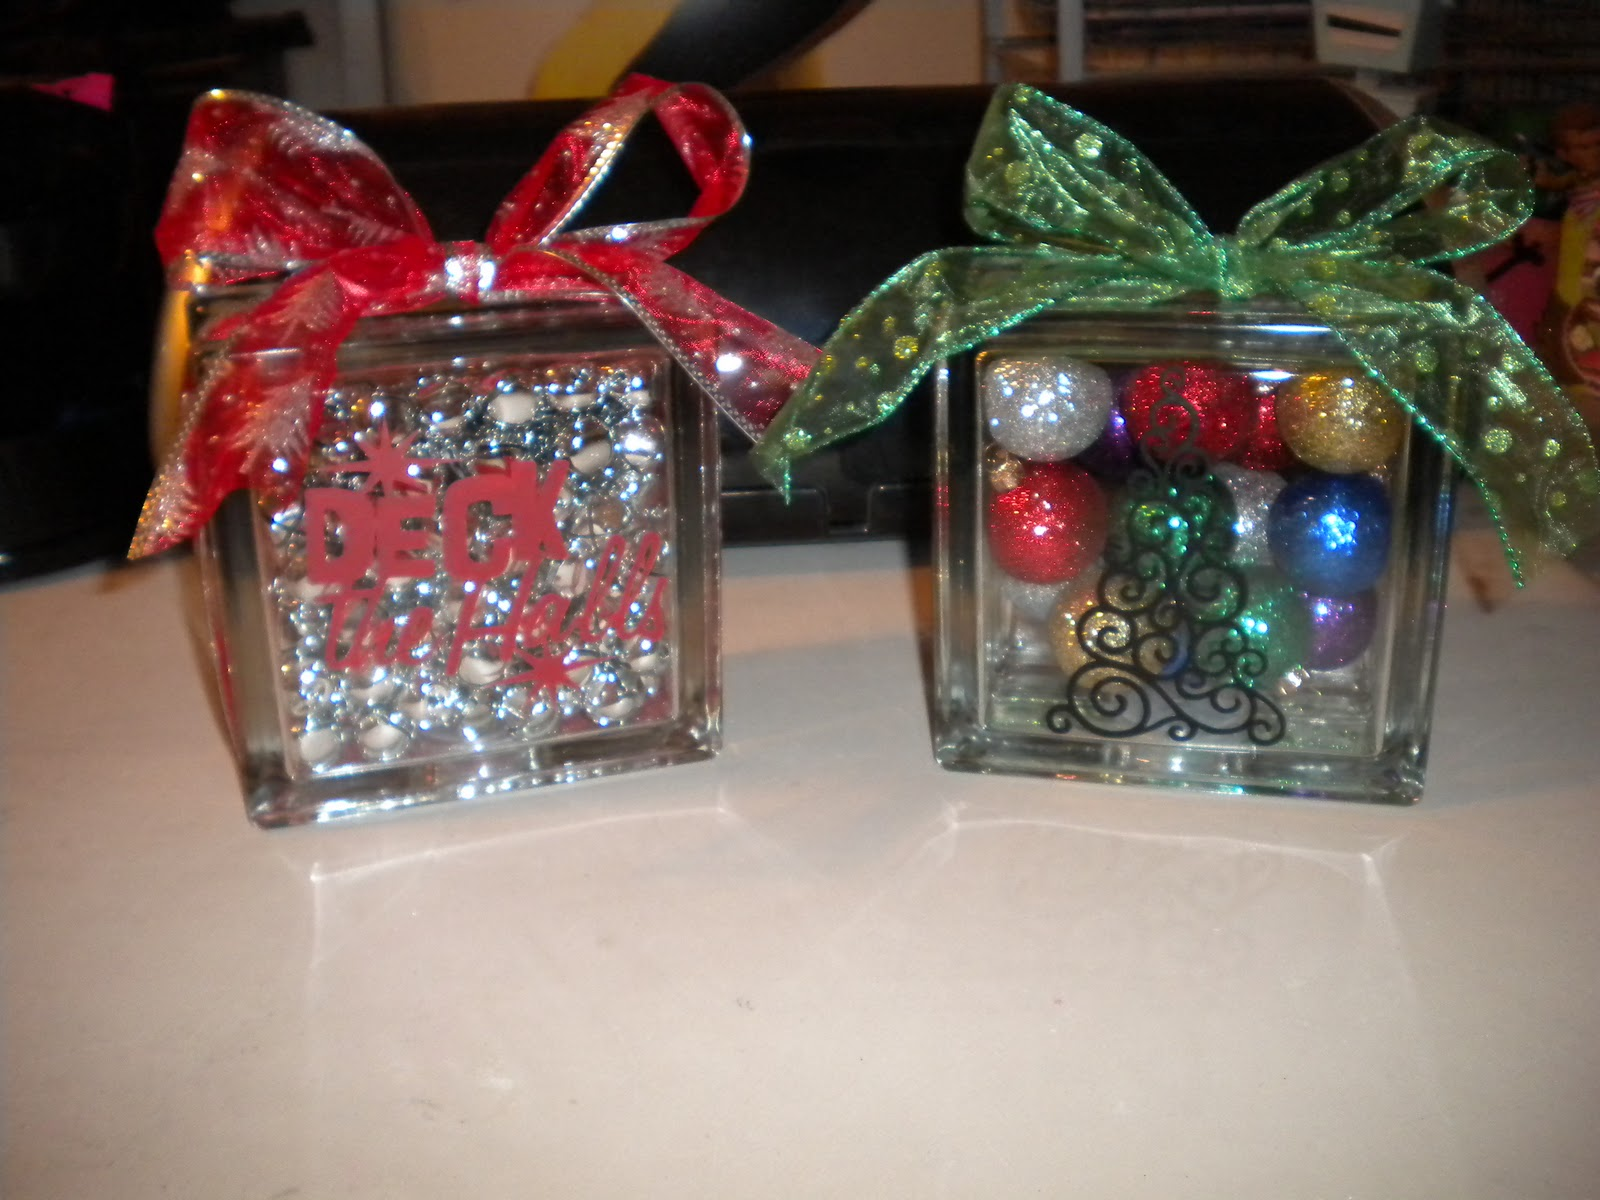 Deco Block Ideas Jean 39s Crafty Corner Day 5 Of 20 Days Of Christmas Glass